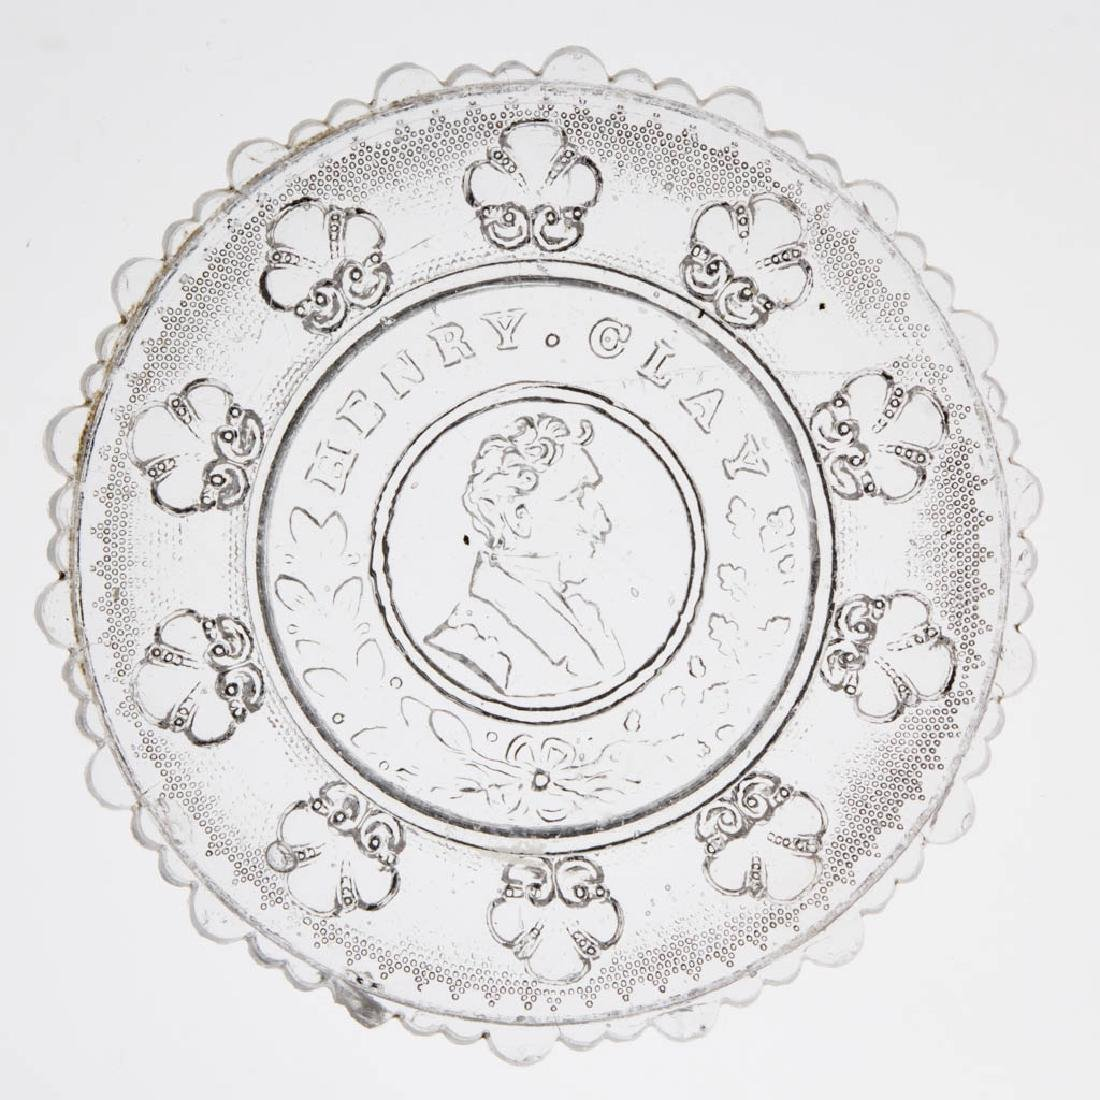 LEE/ROSE NO. 562 CUP PLATE